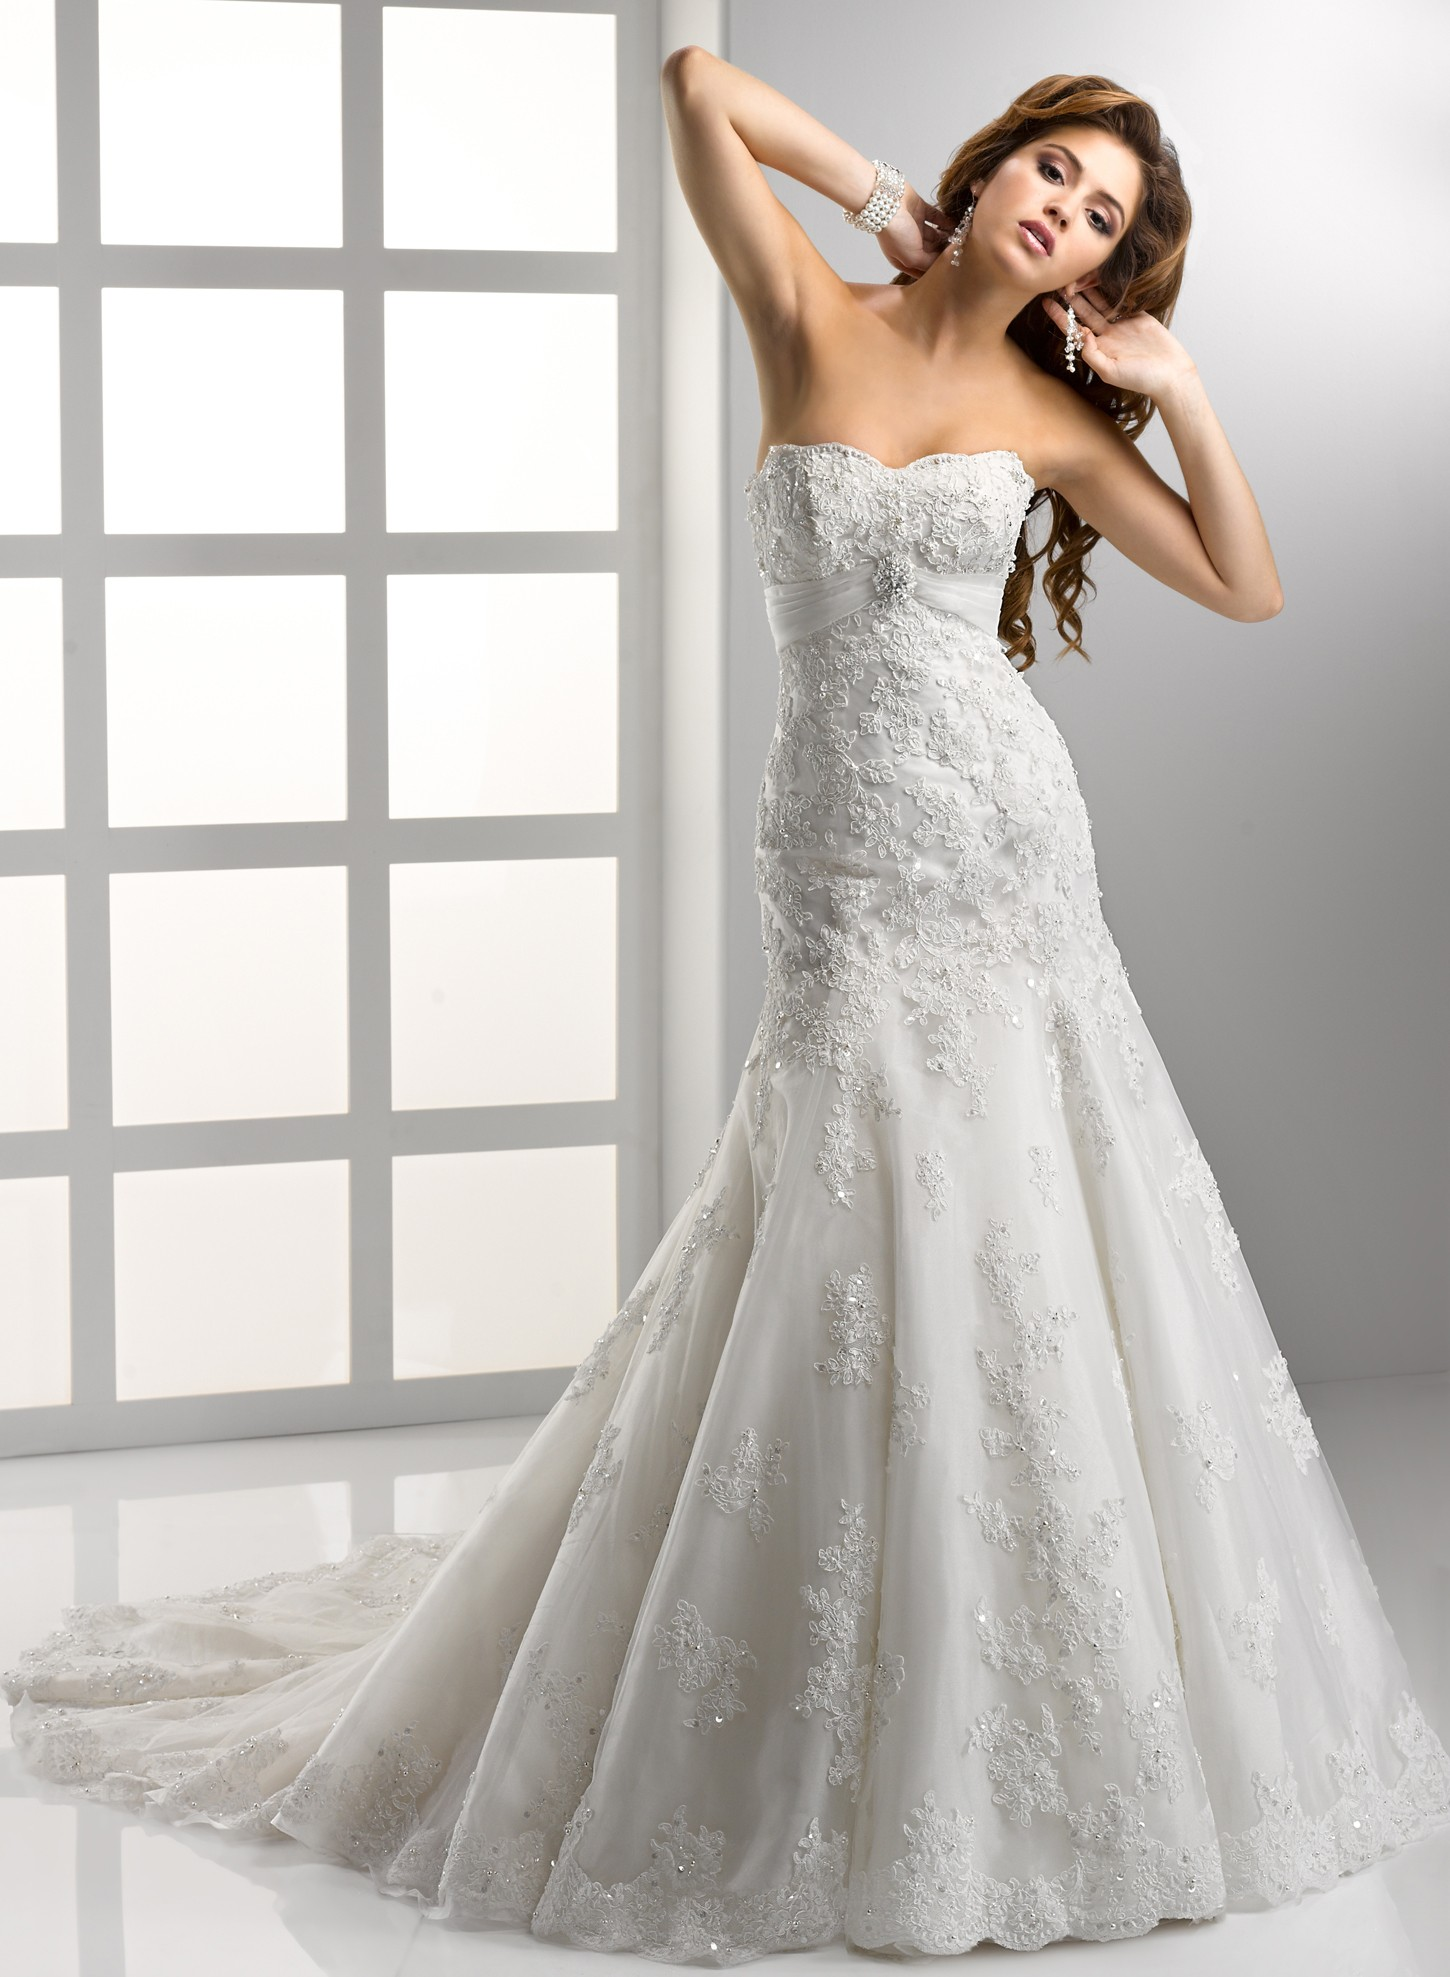 Wedding dresses with embellished lace sang maestro for A pretty wedding dress